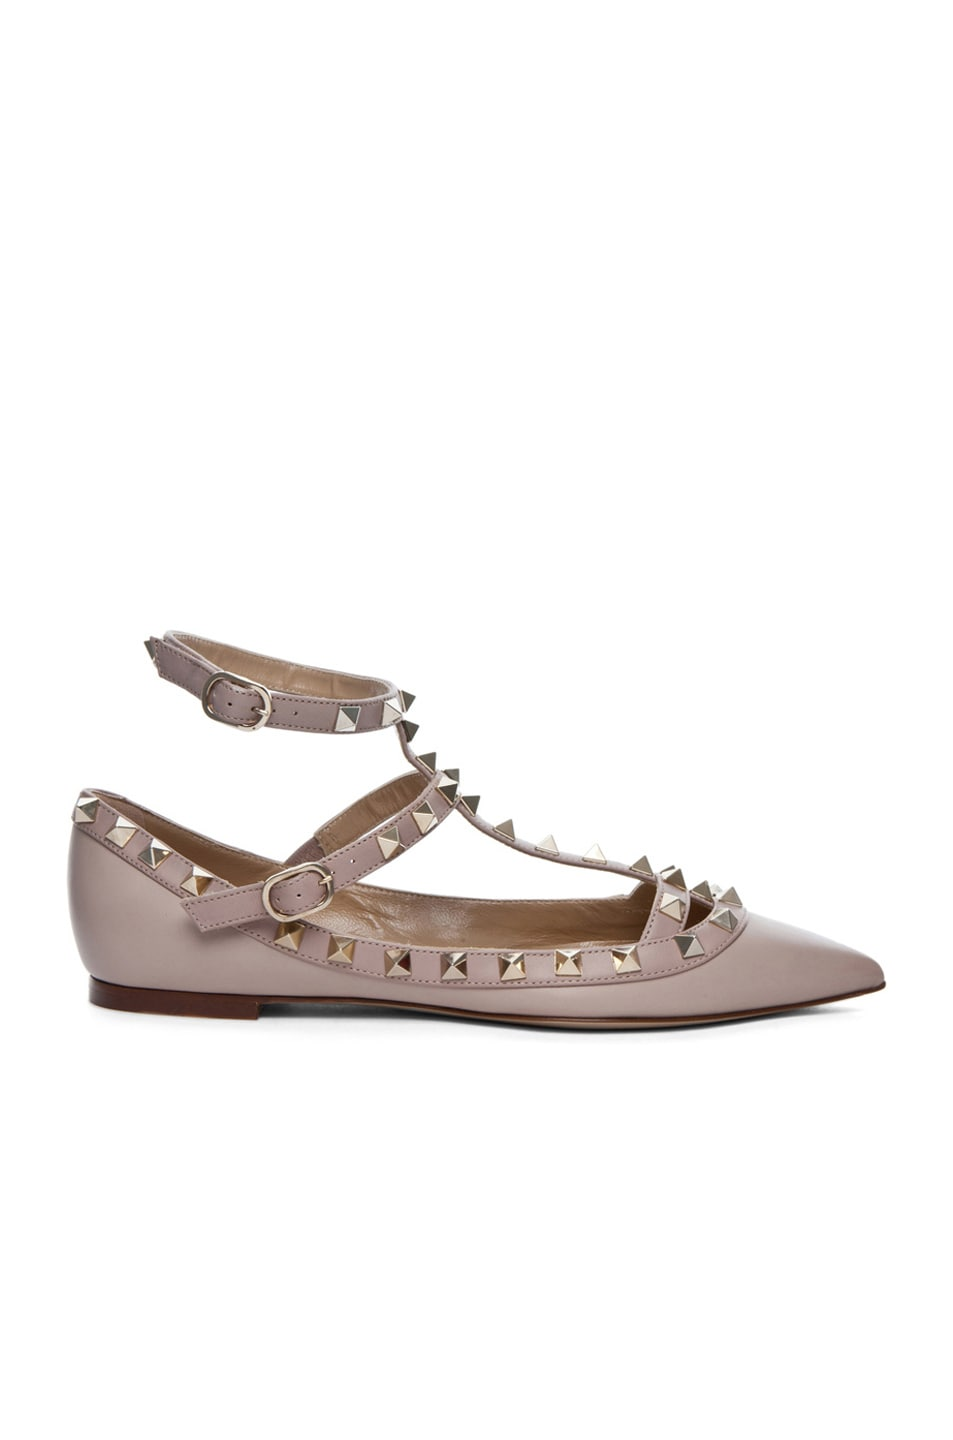 Image 1 of Valentino Rockstud Leather Cage Flats in Powder